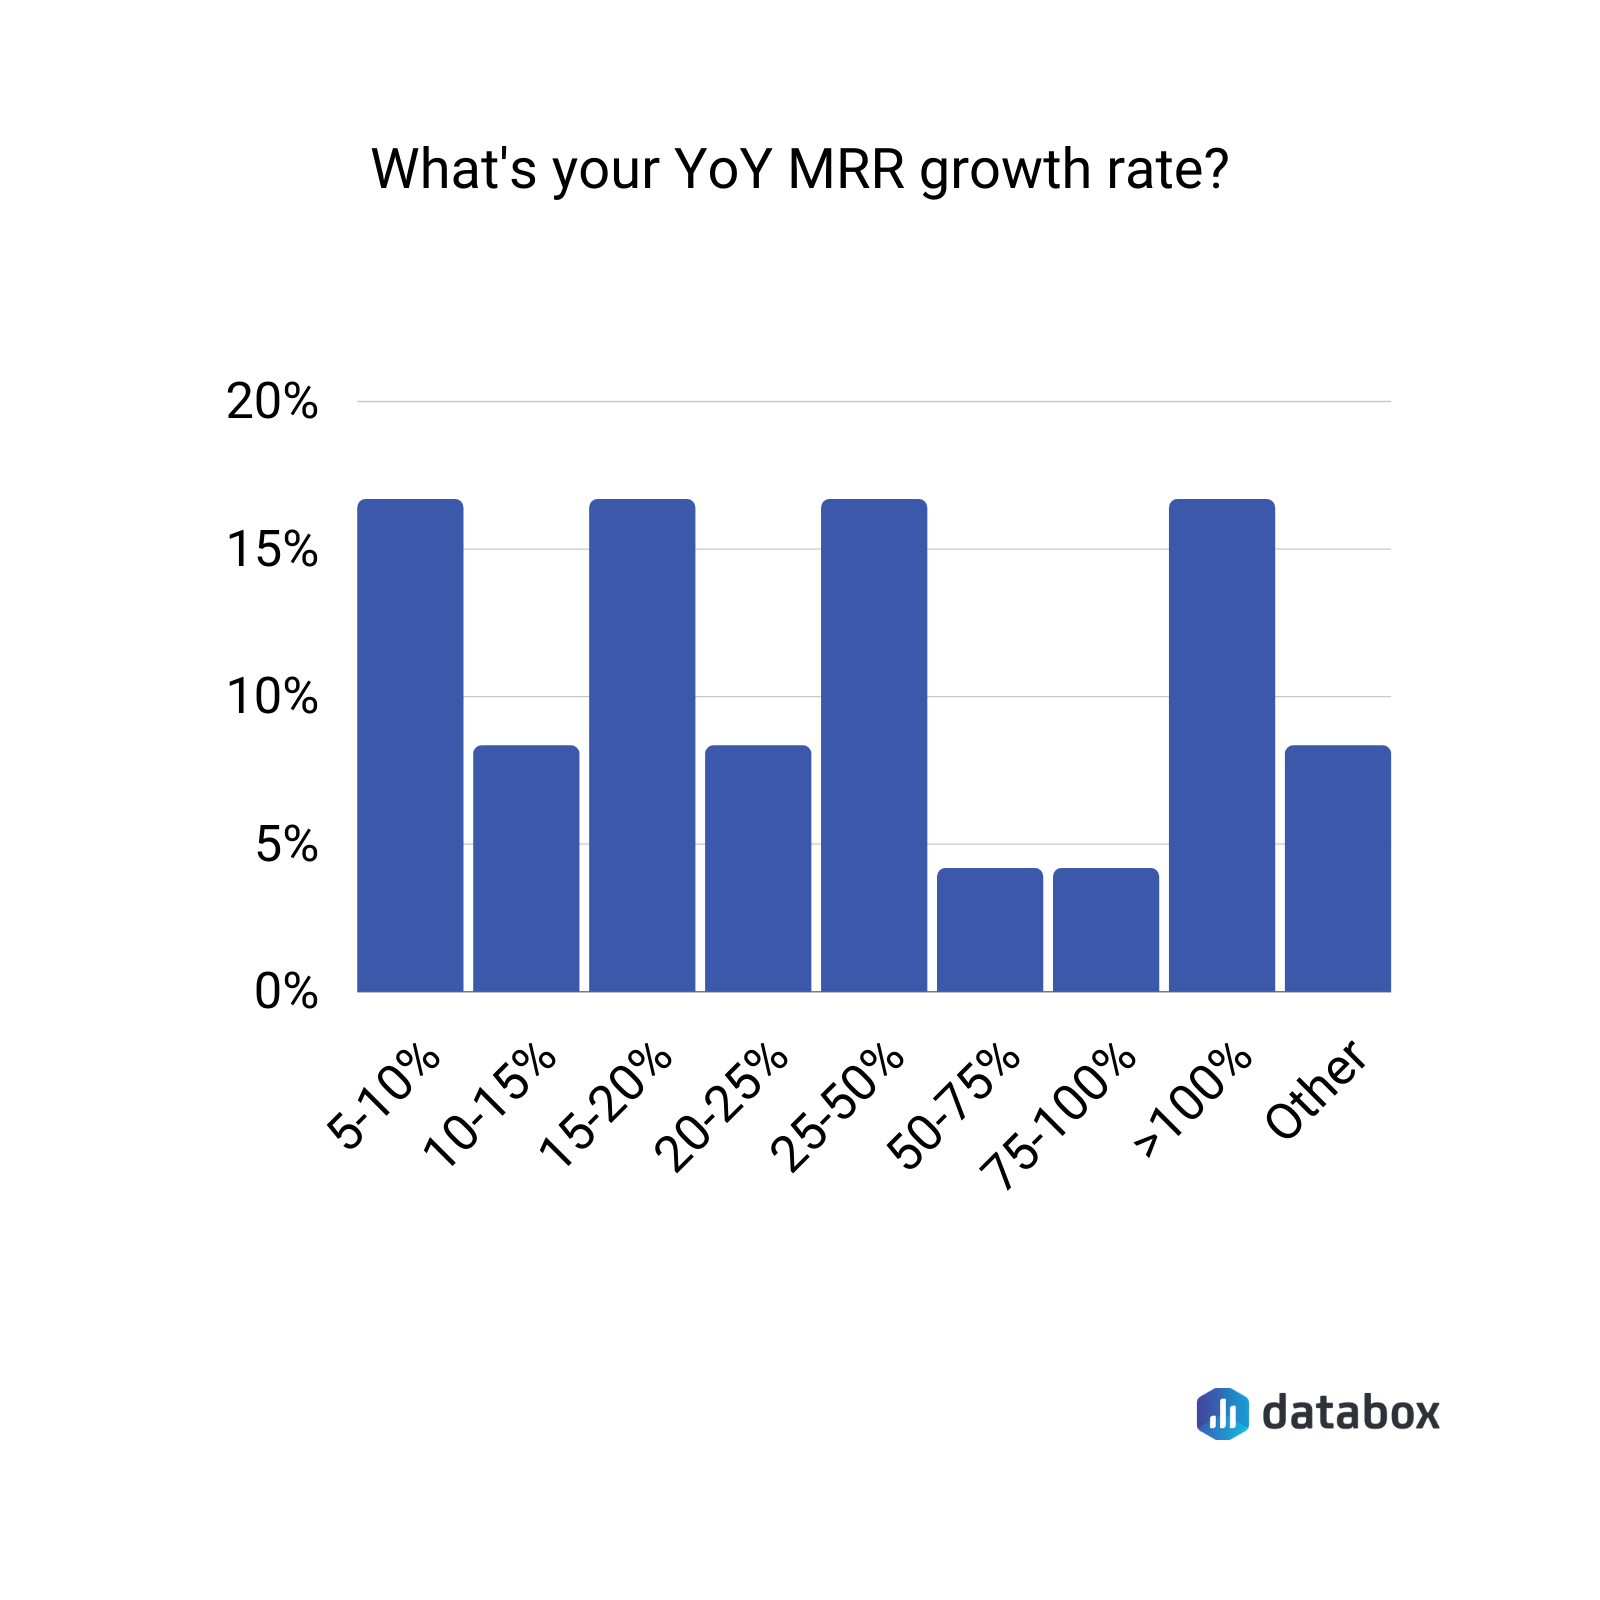 YoY MRR growth rate data graph